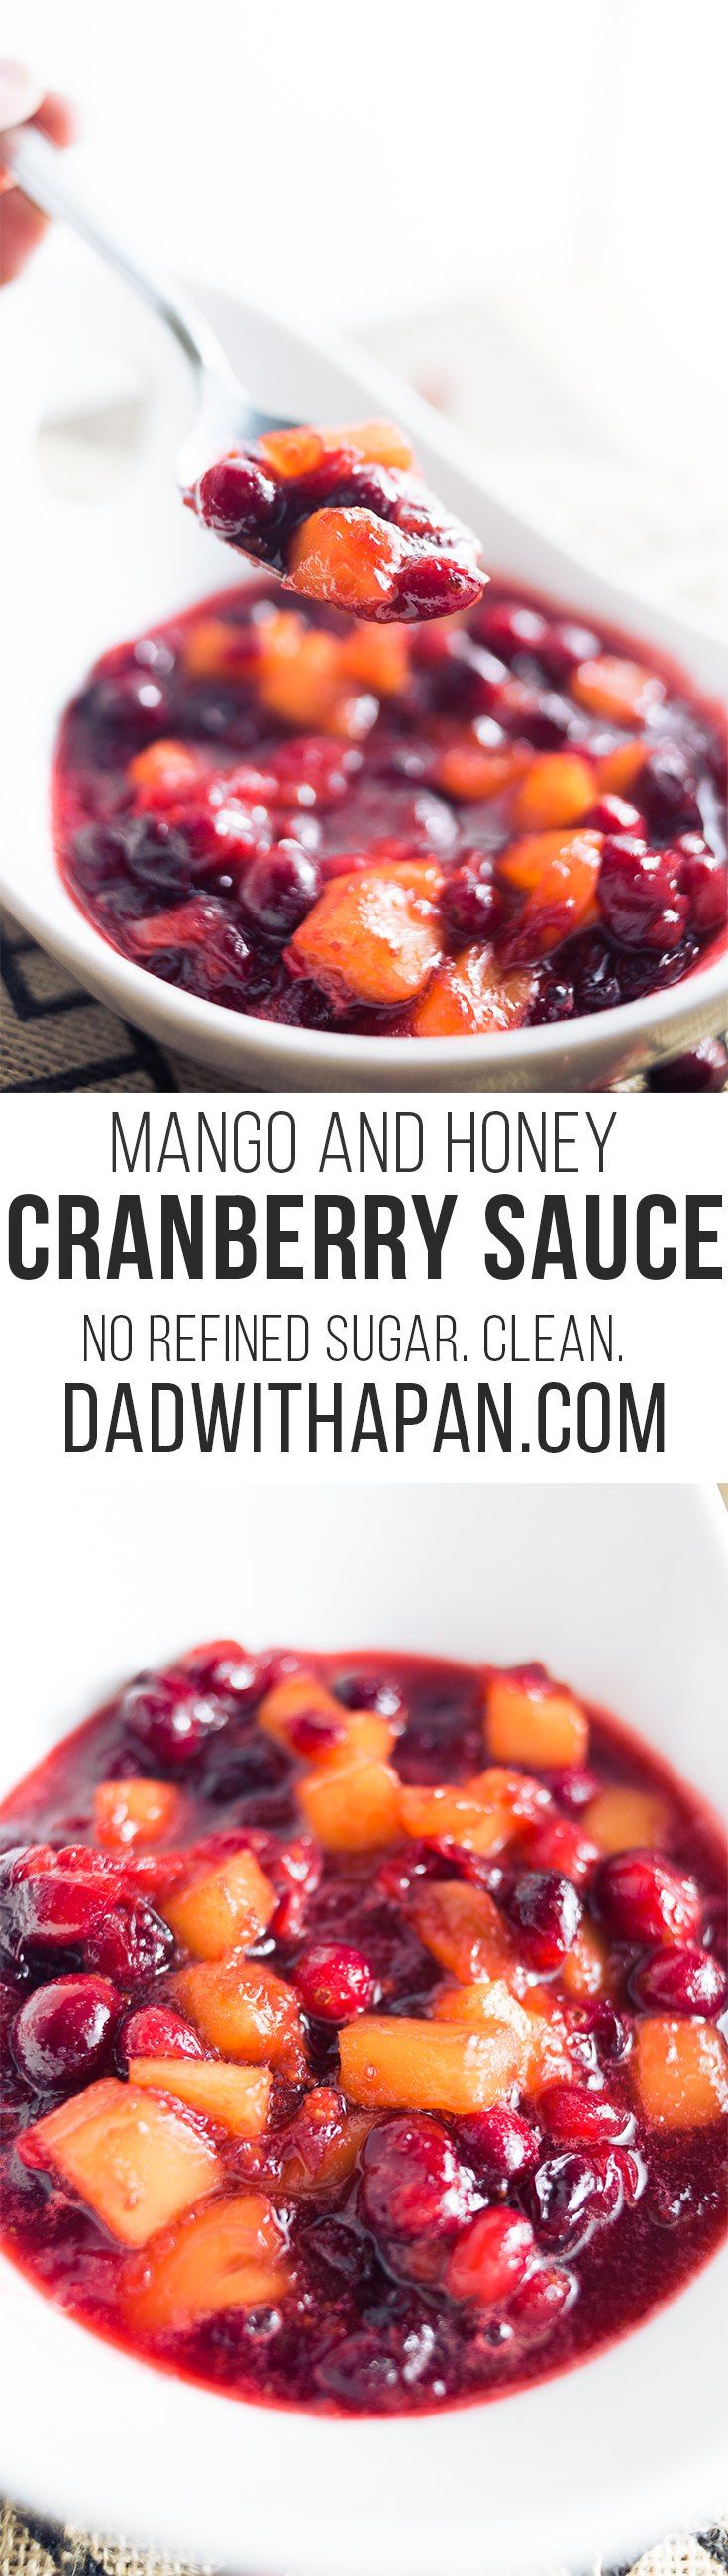 Cut down on refined sugars with this Whole Berry Cranberry Sauce With Honey and Mango!